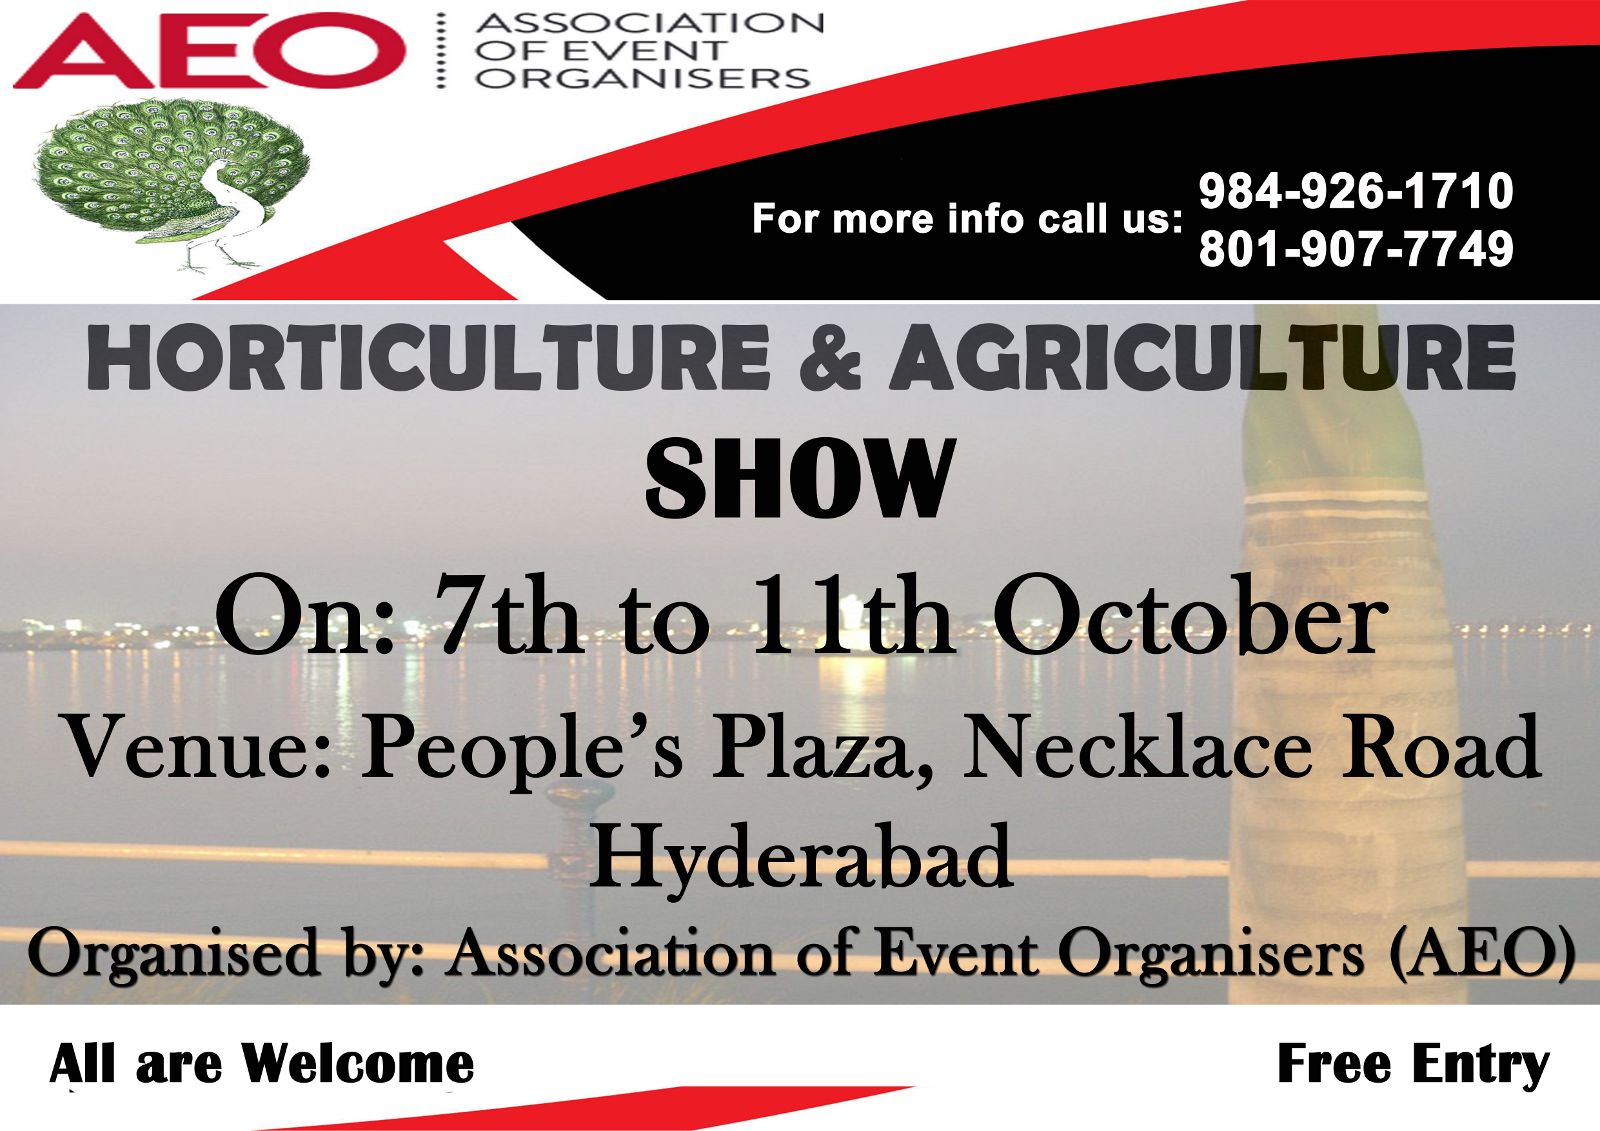 Horticluture & Agriculture Show in Hyderabad